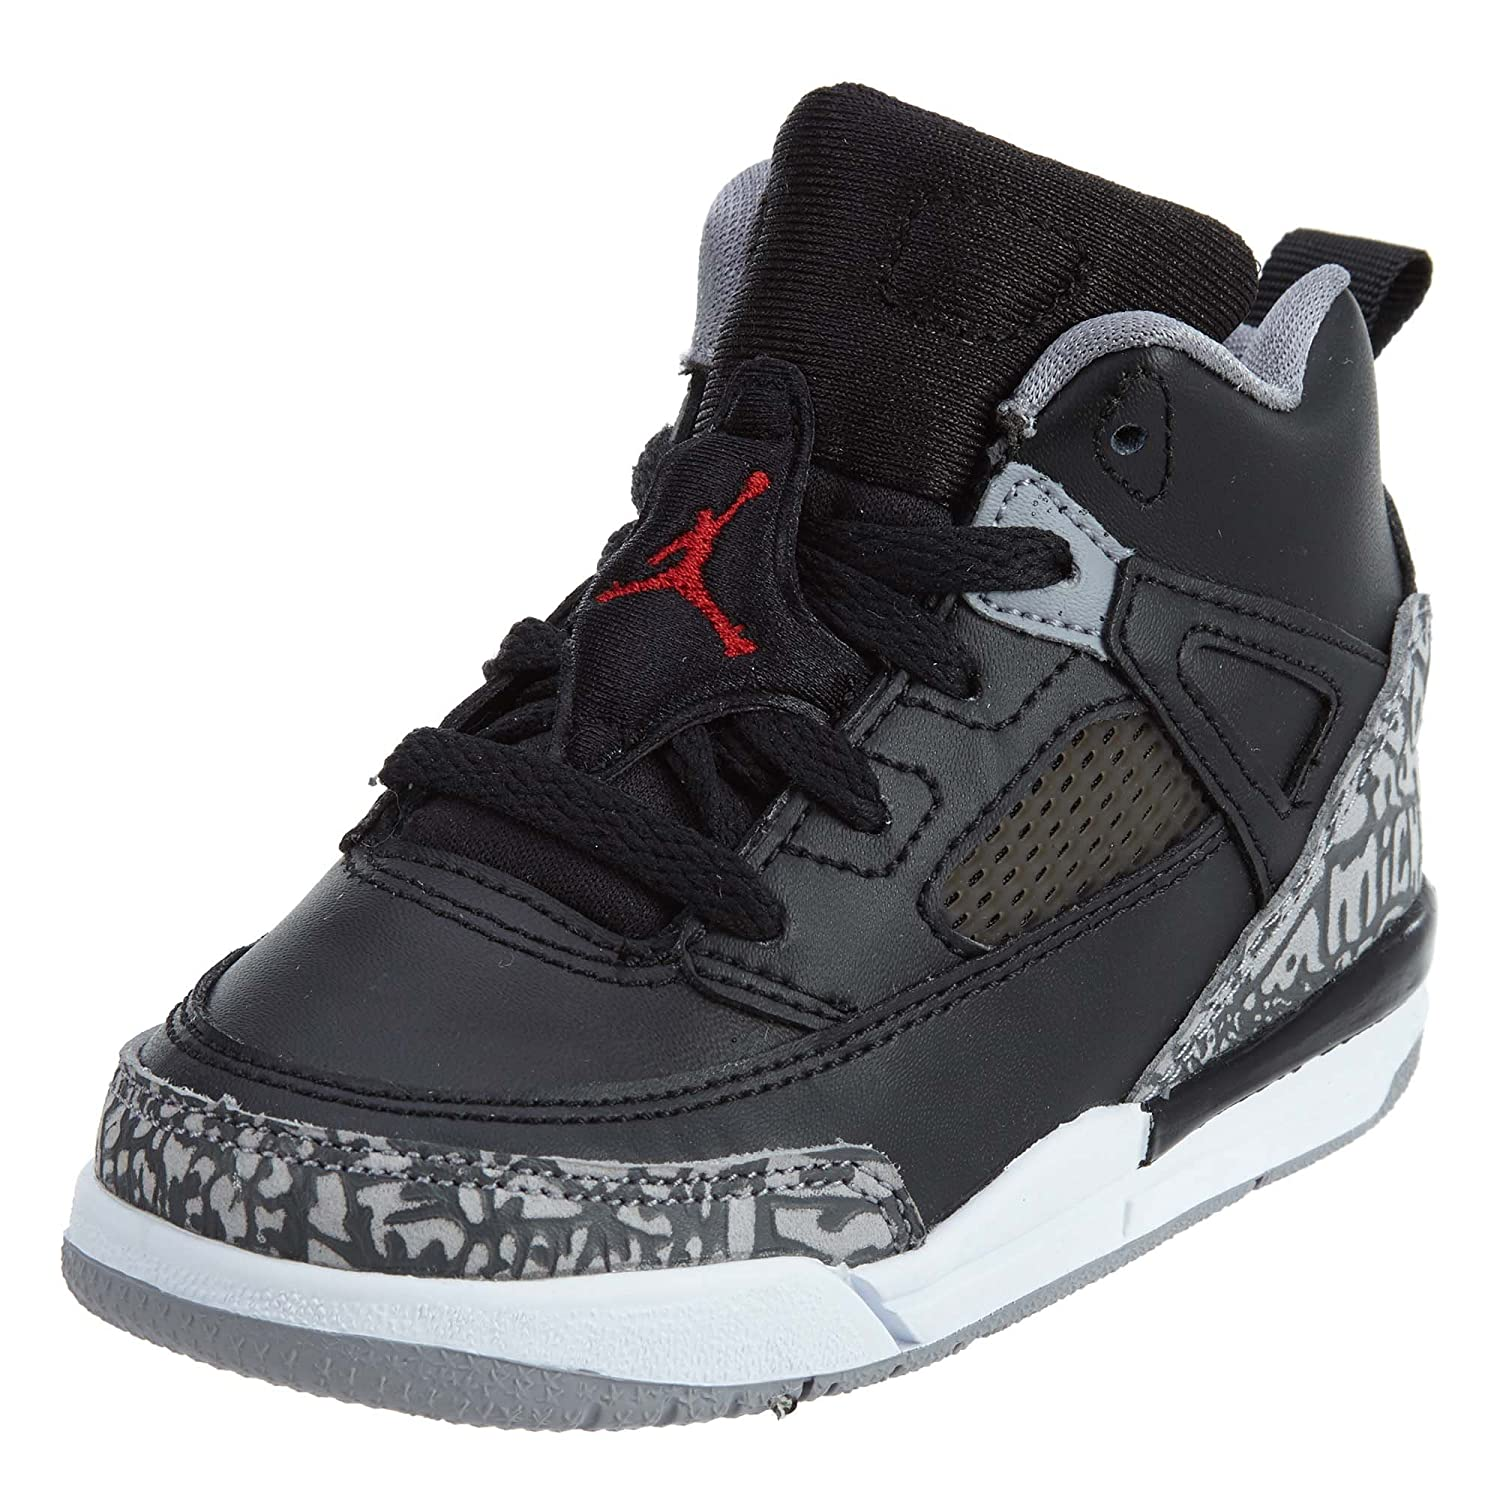 Pre School Nike Air Jordan Spizike BP Black Cement Black/White/Red